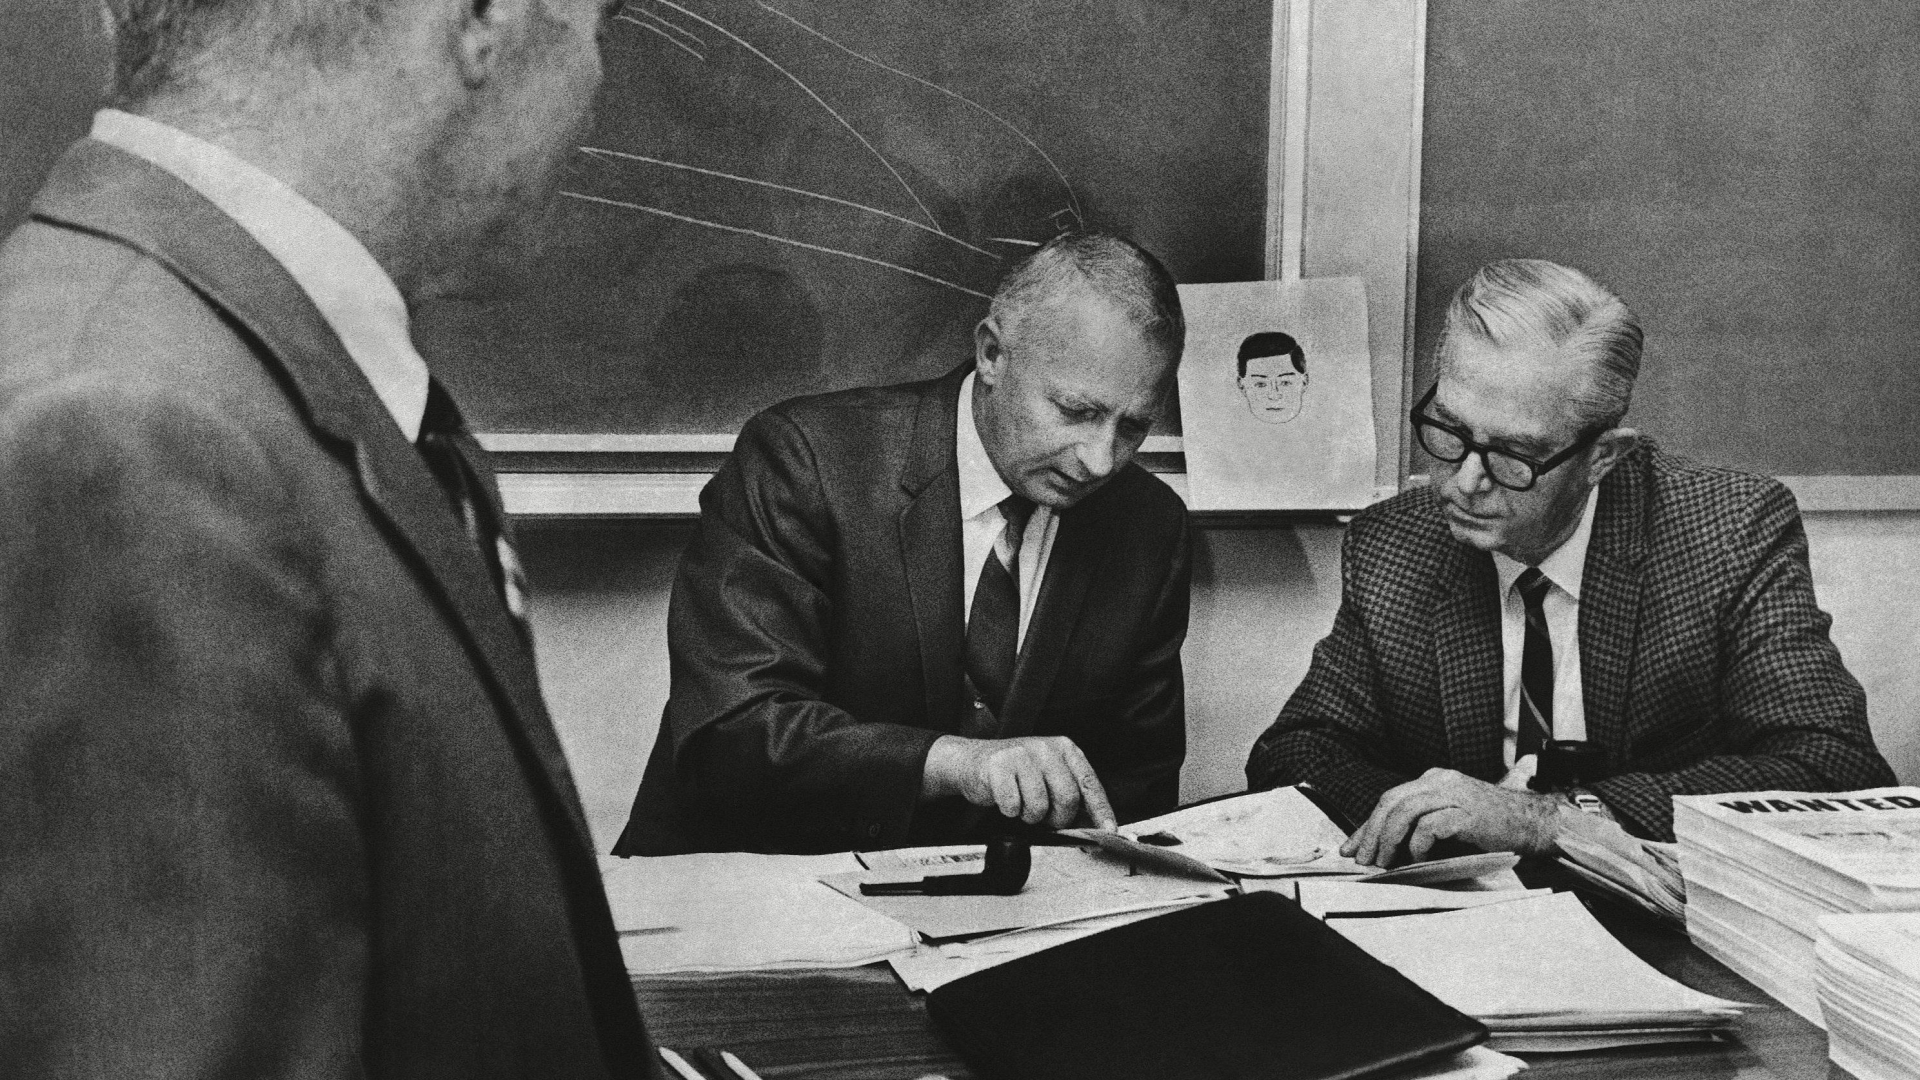 October 20, 1969: At the height of Zodiac's serial-killing spree, Martin Lee, Hal Snook and William Hallett, law-enforcement officers from two Bay Area counties and San Francisco, met to compare notes toward catching the murderer before he struck again. (Credit: SJV/AP/REX/Shutterstock)